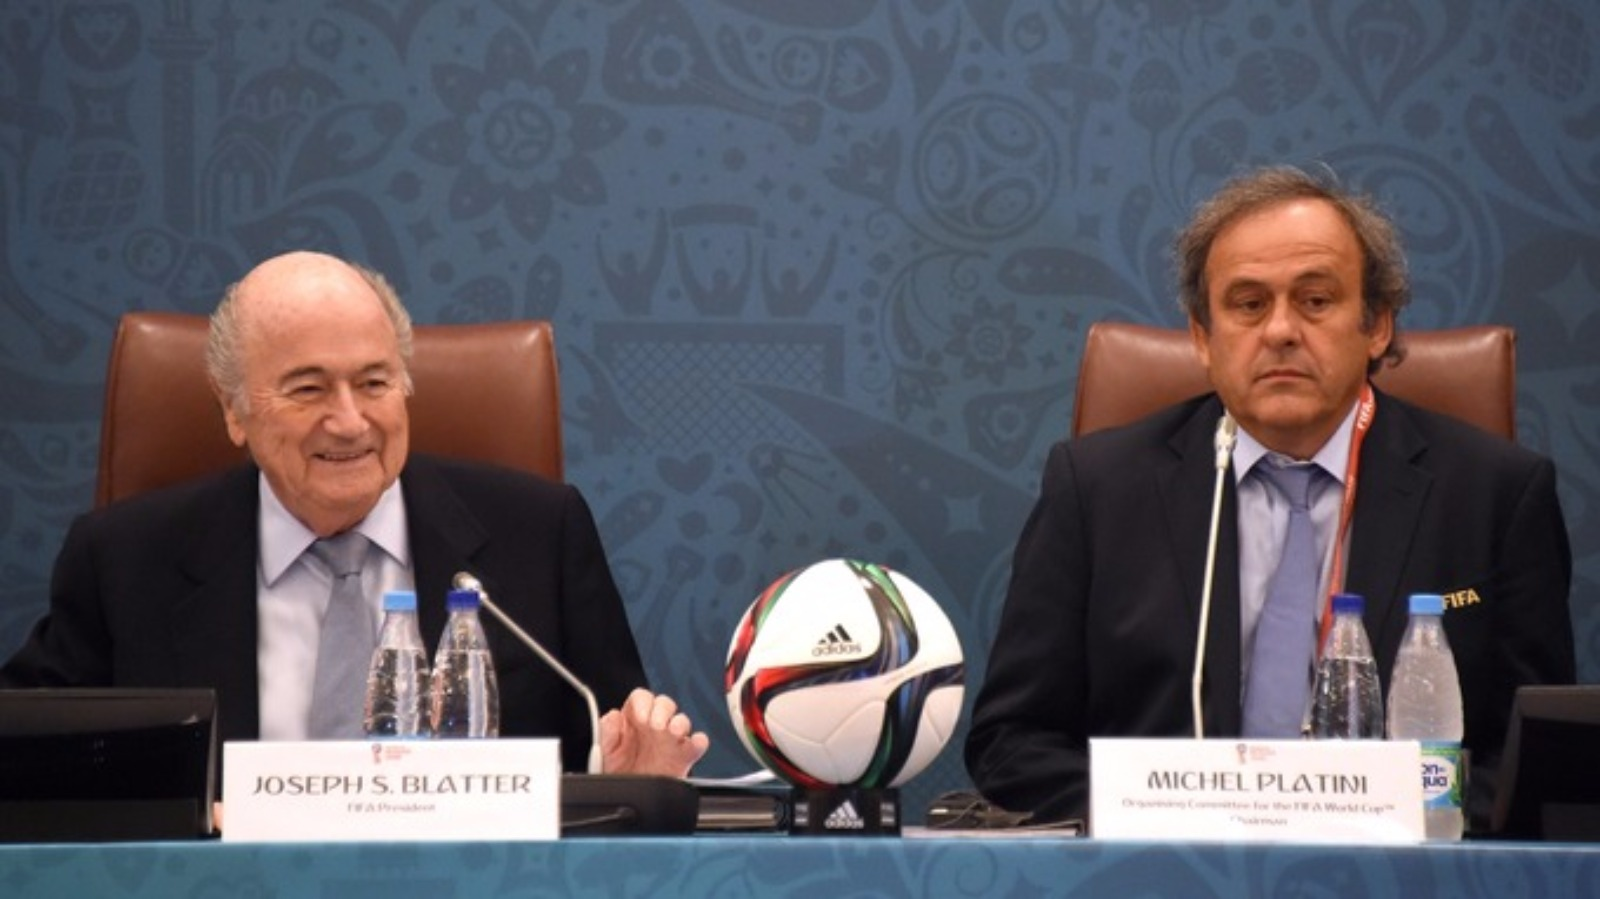 Sepp Blatter and Michel Platini handed eight year bans from all